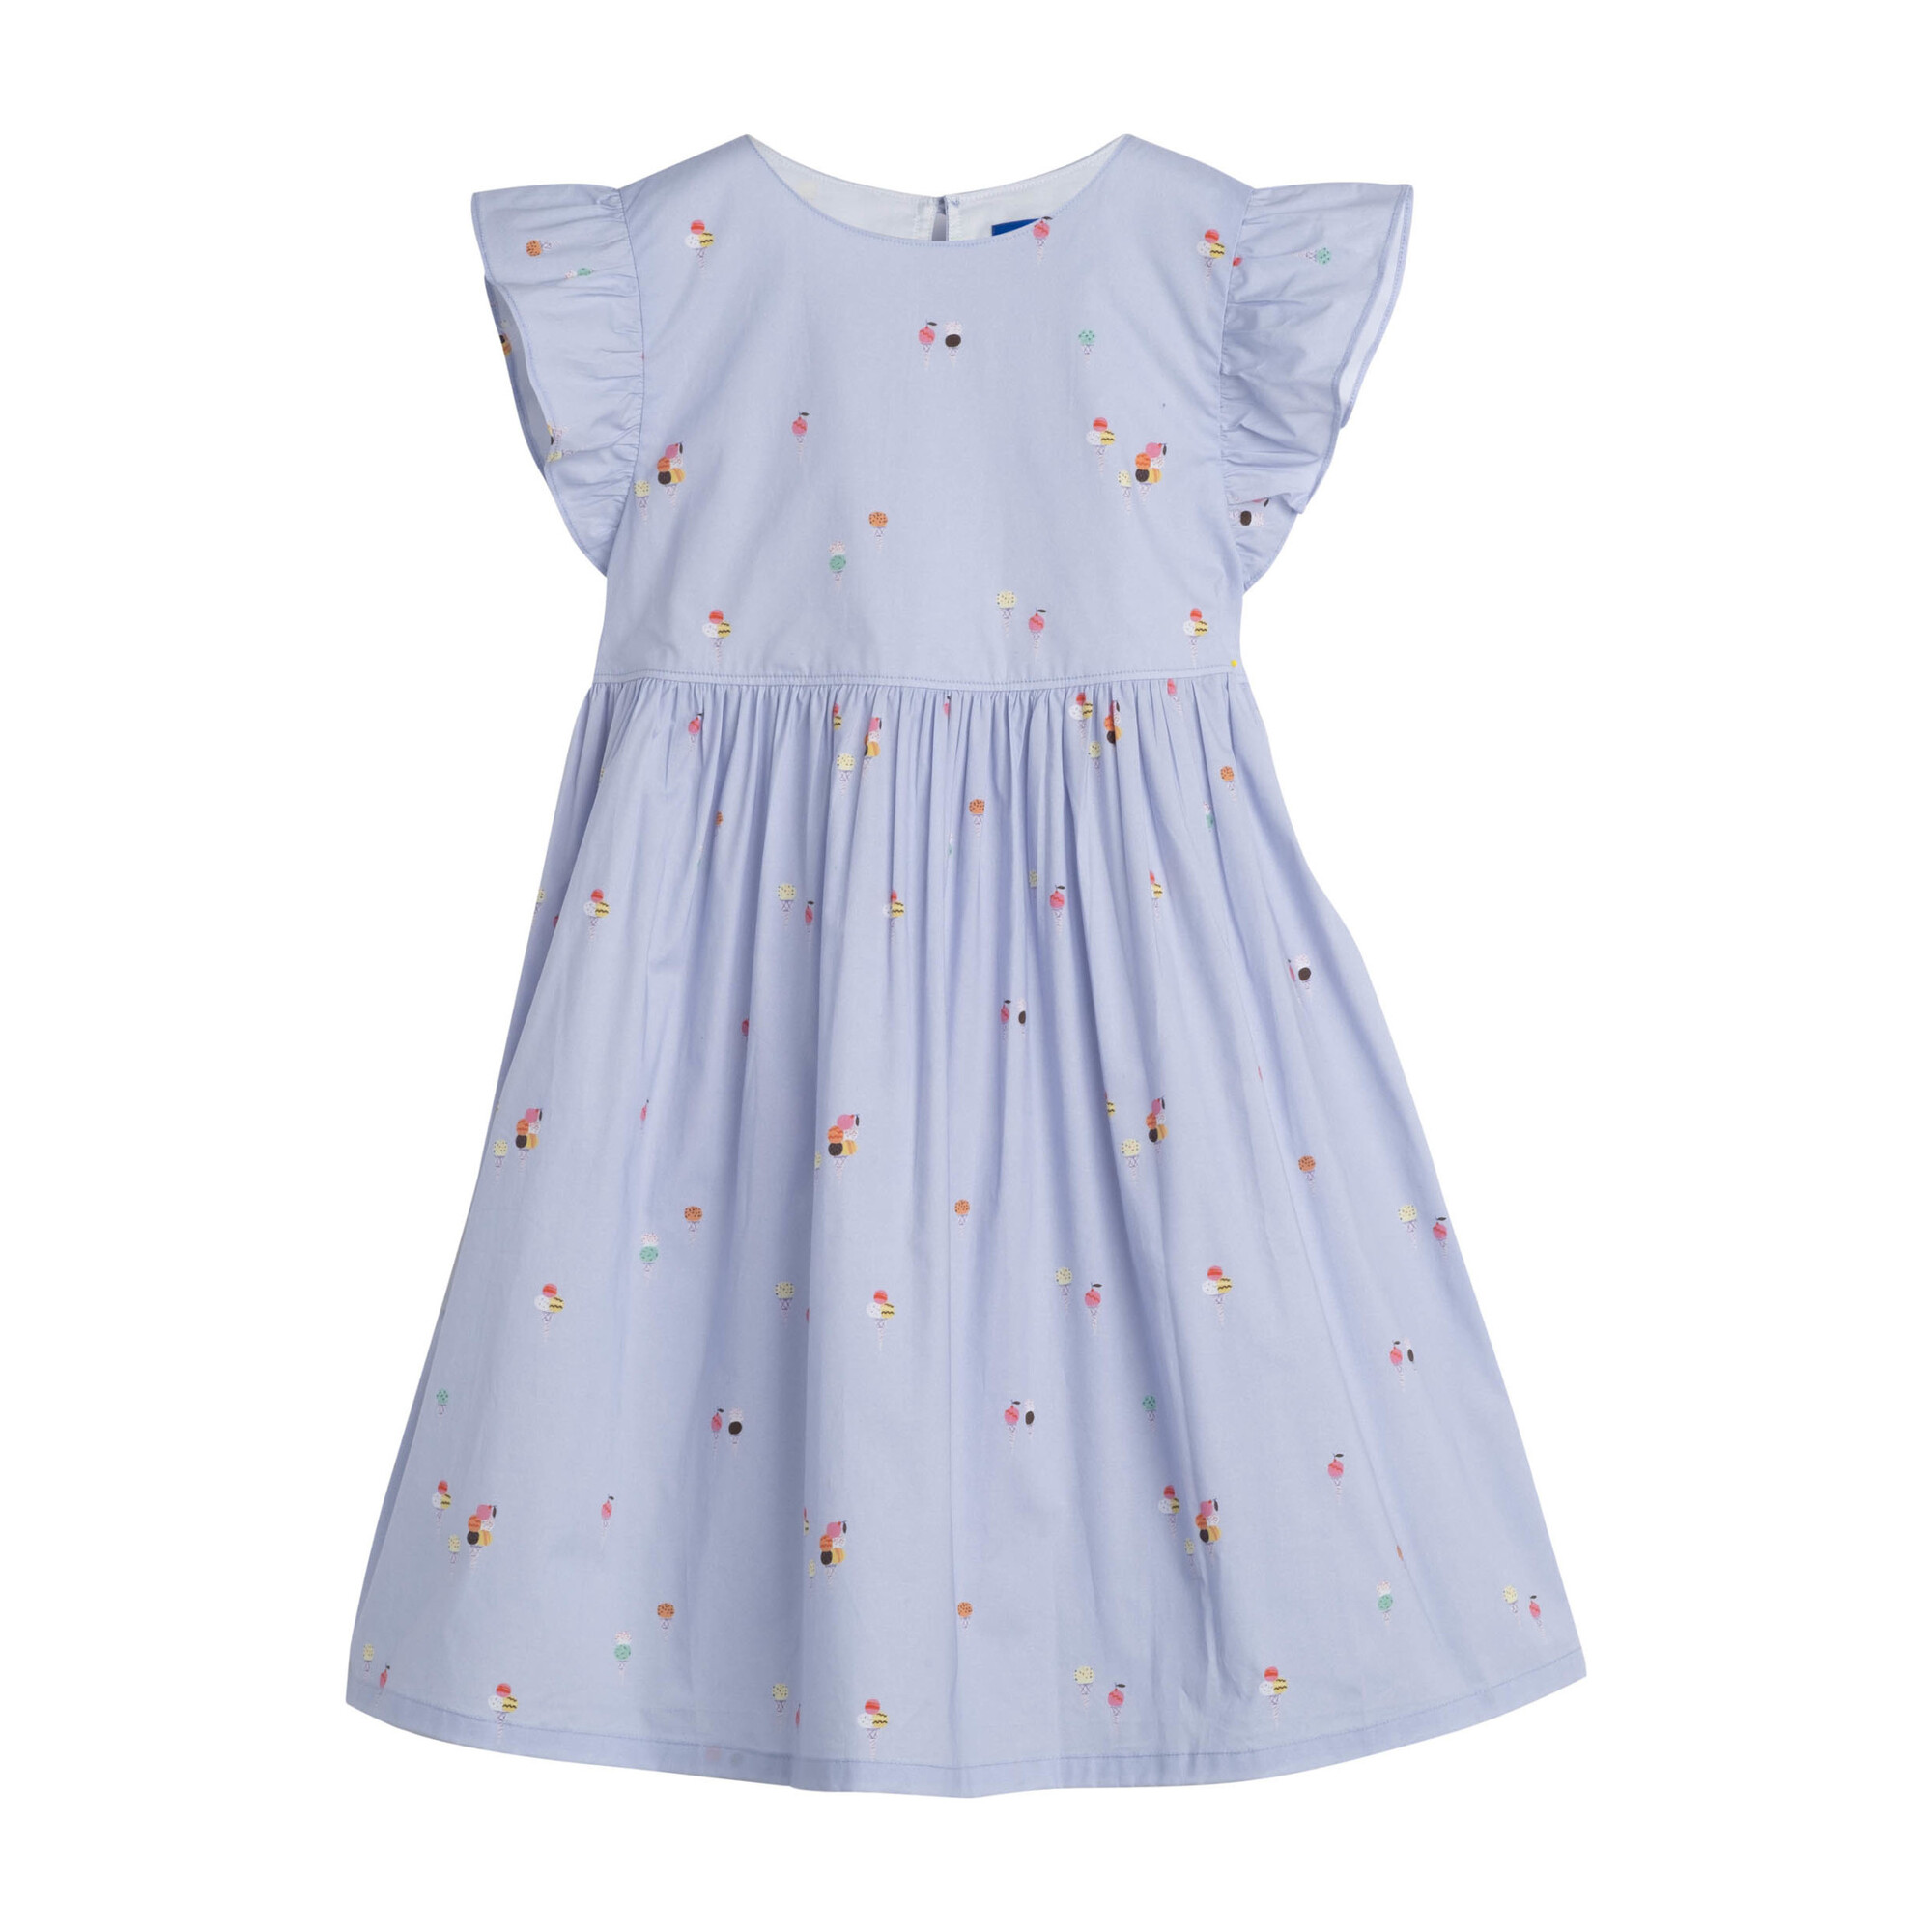 Lottie Dress, Ice Cream